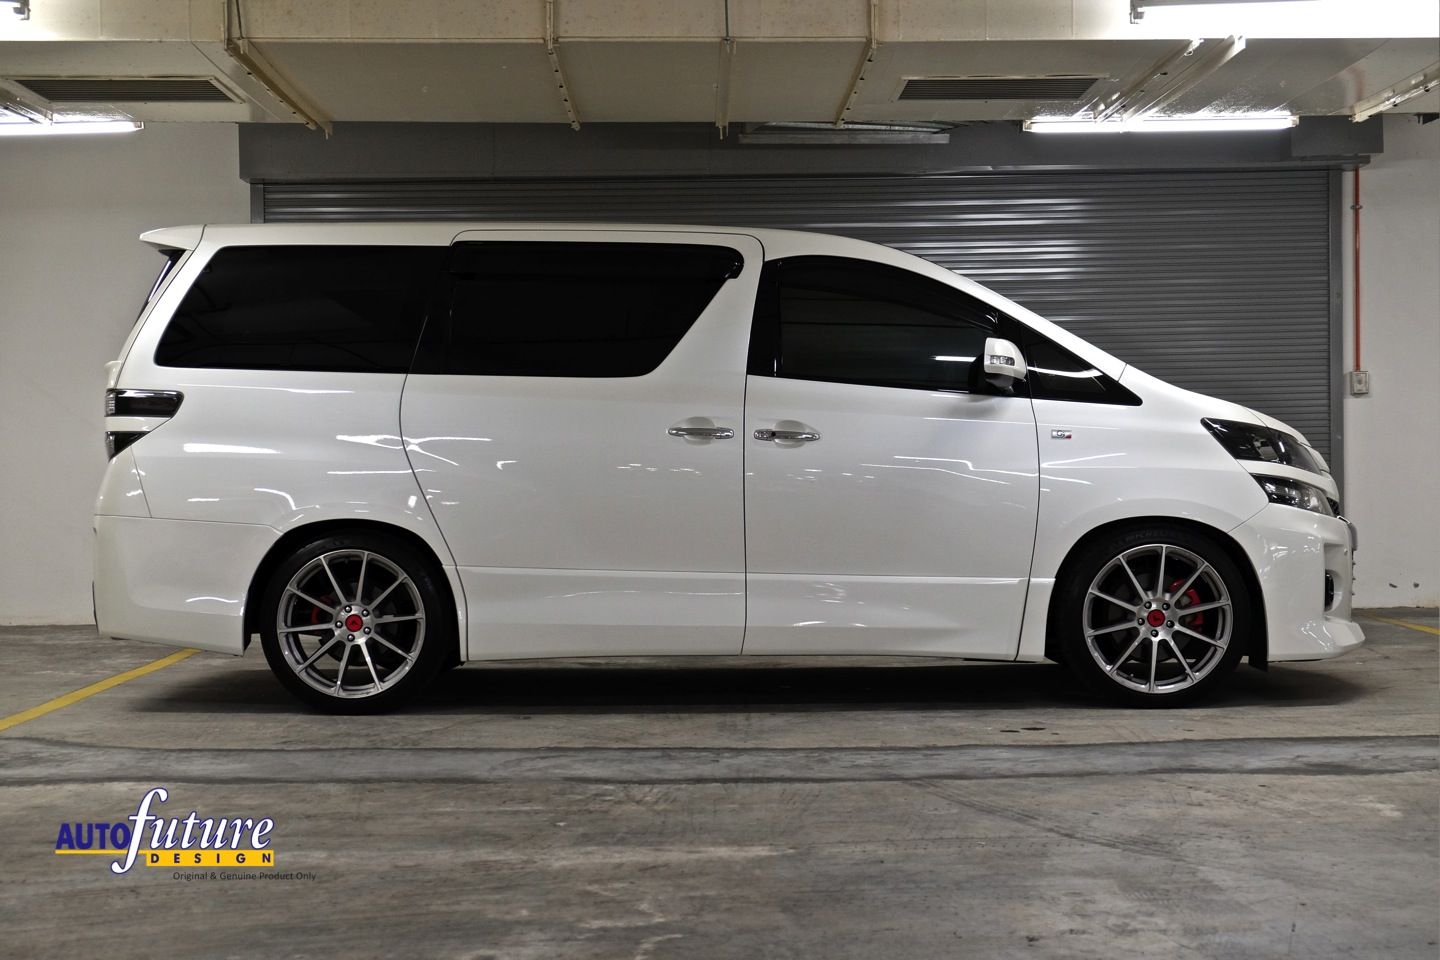 Toyota Pay By Phone >> Toyota Vellfire Equipped With Vorsteiner V-FF 102 Wheels ...